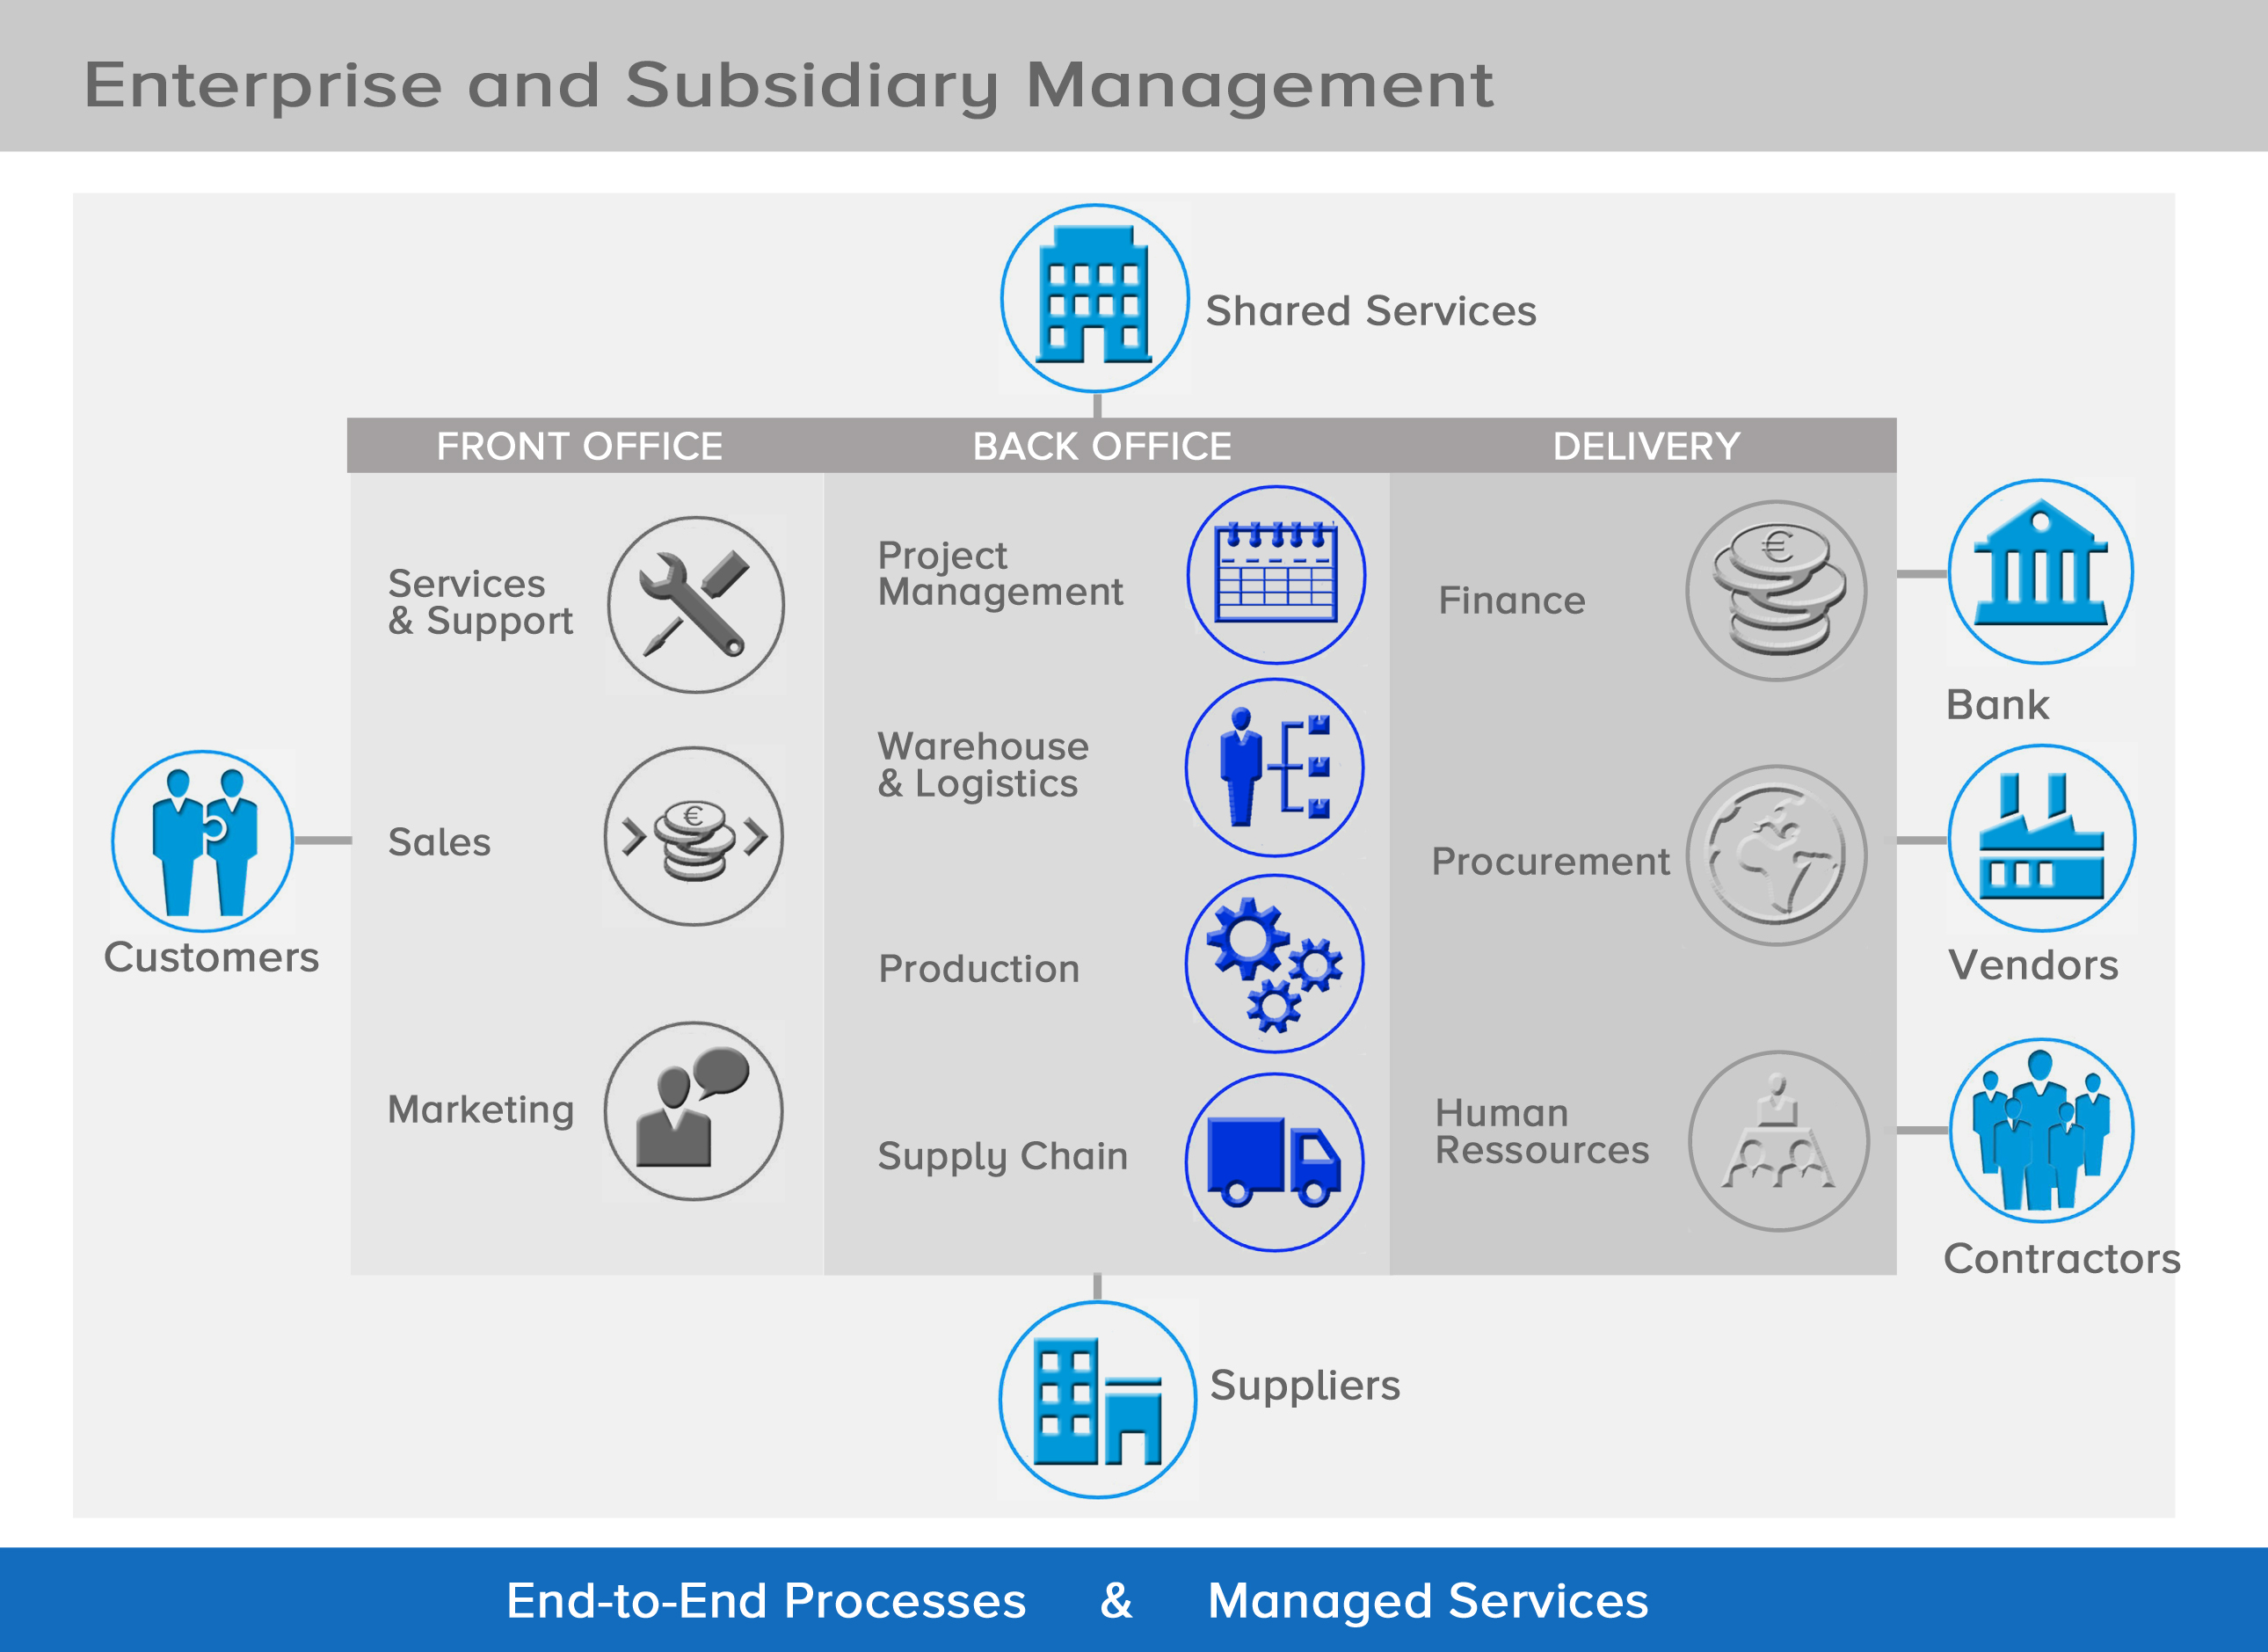 Subsidiary Management Overview